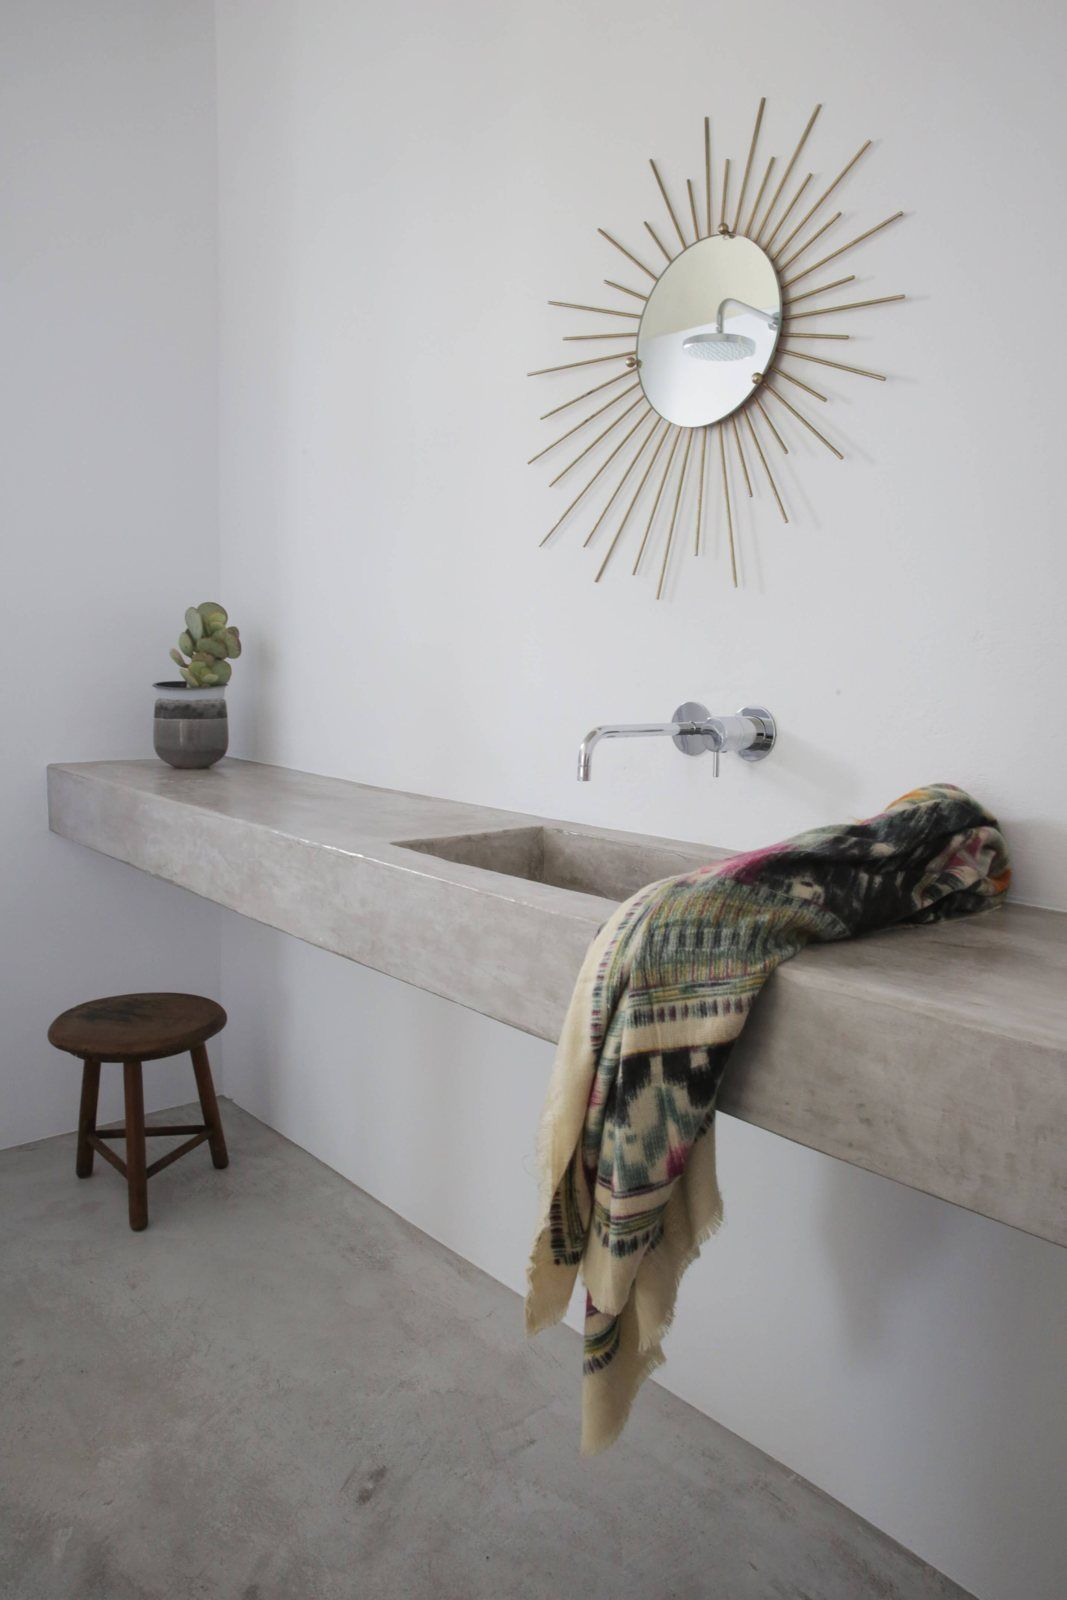 Bathroom with concrete countertop and floor. Maison Kamari by React Architects. Photo by Damien De Medeiros.